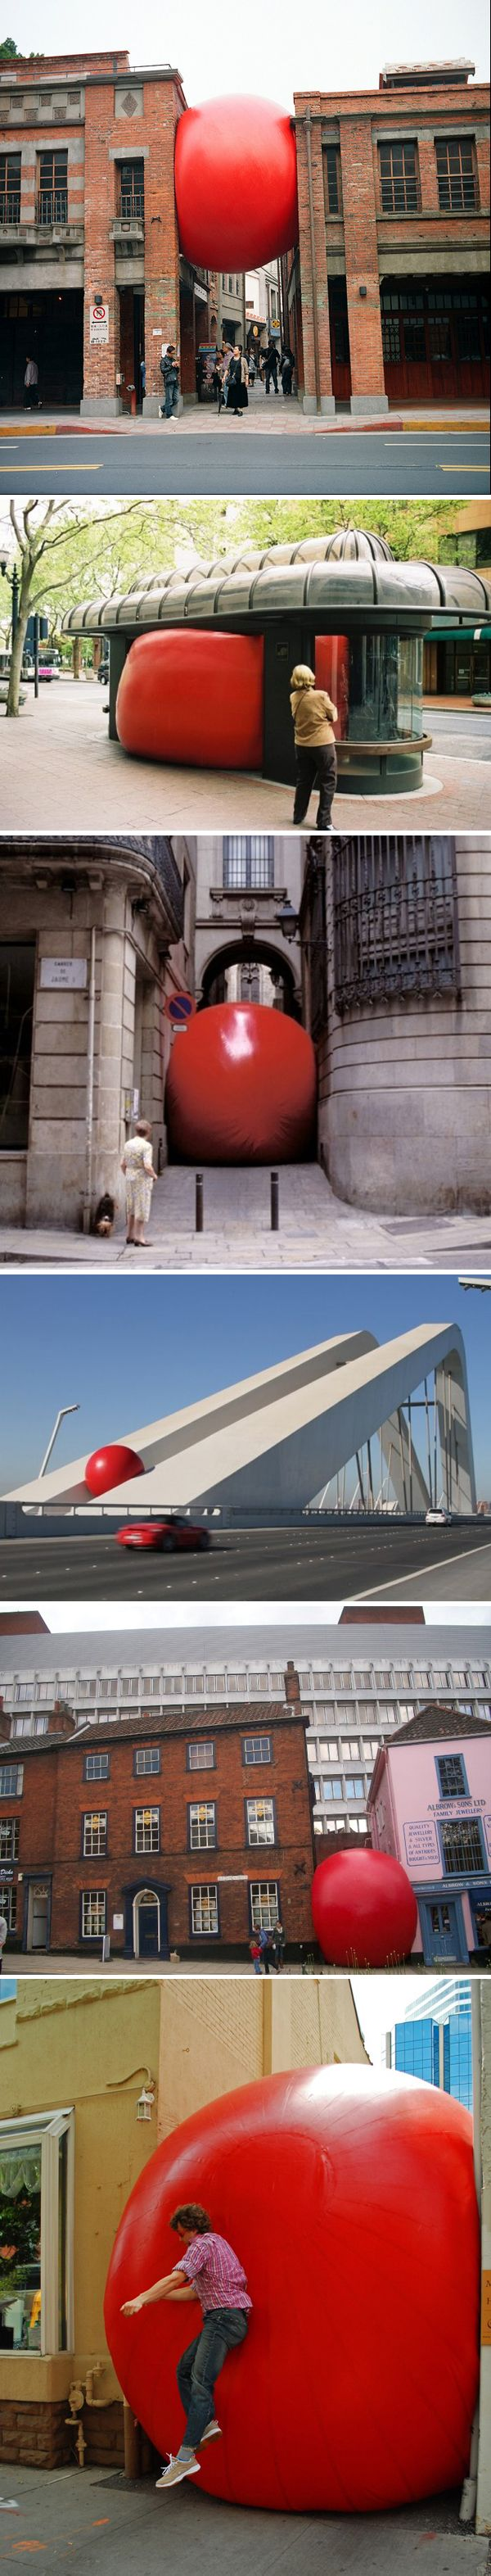 Kurt Perschke's Red Ball Project   http://www.juxtapoz.com/Street-Art/kurt-perschkes-red-ball-project